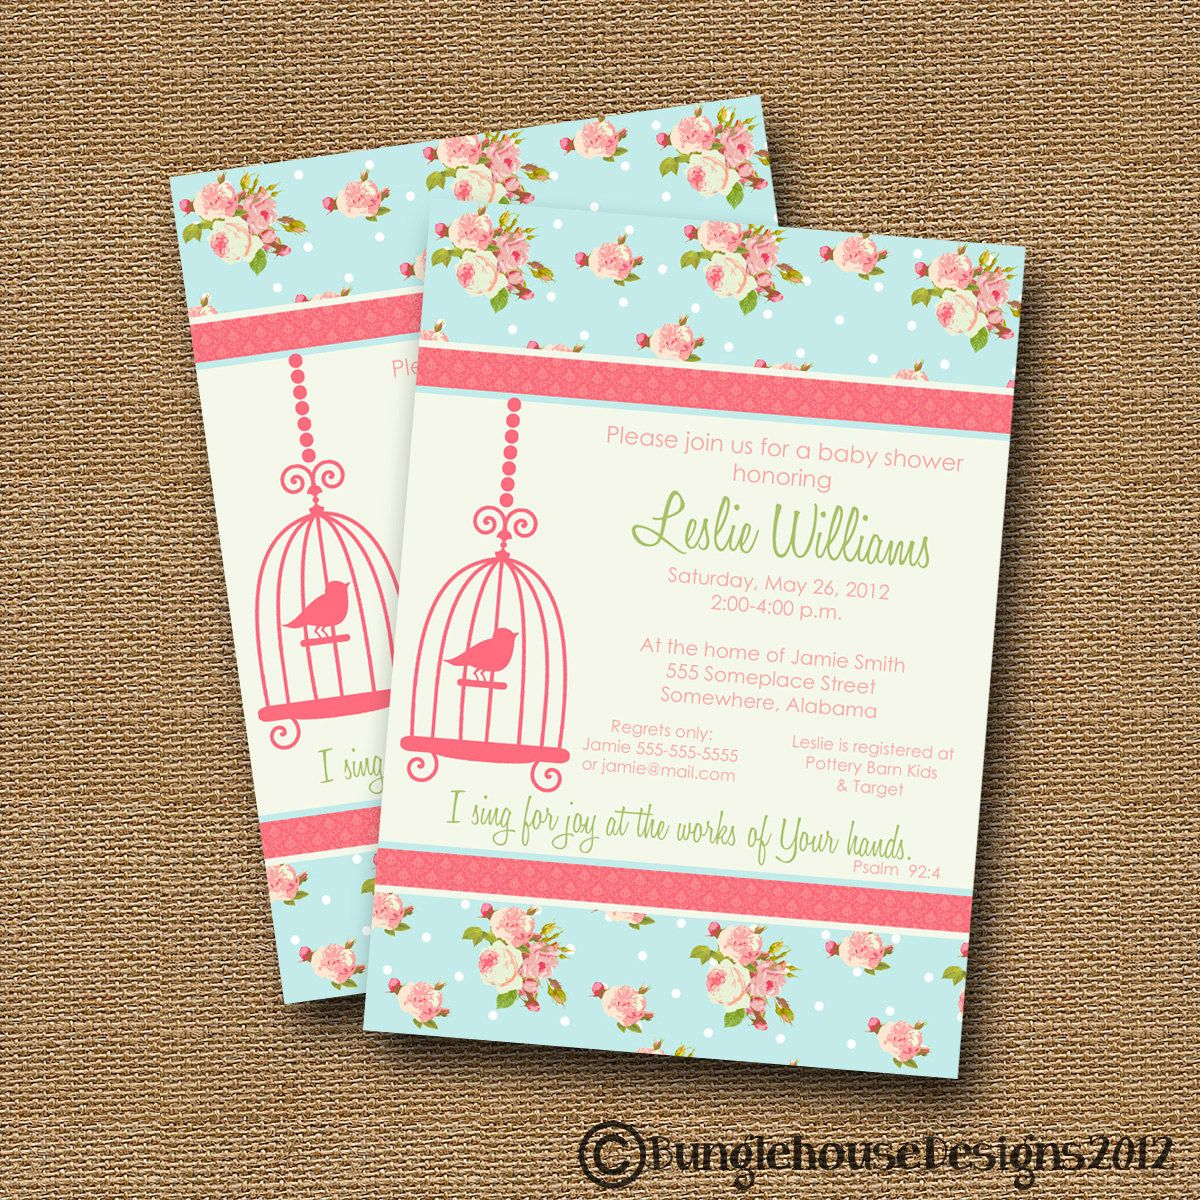 Shabby Chic Baby Shower Invitation BLUE Floral with Bird Cage Silhouette -DIY PRINTABLE- Christian Scripture Bible Verse. $12.00, via Etsy.